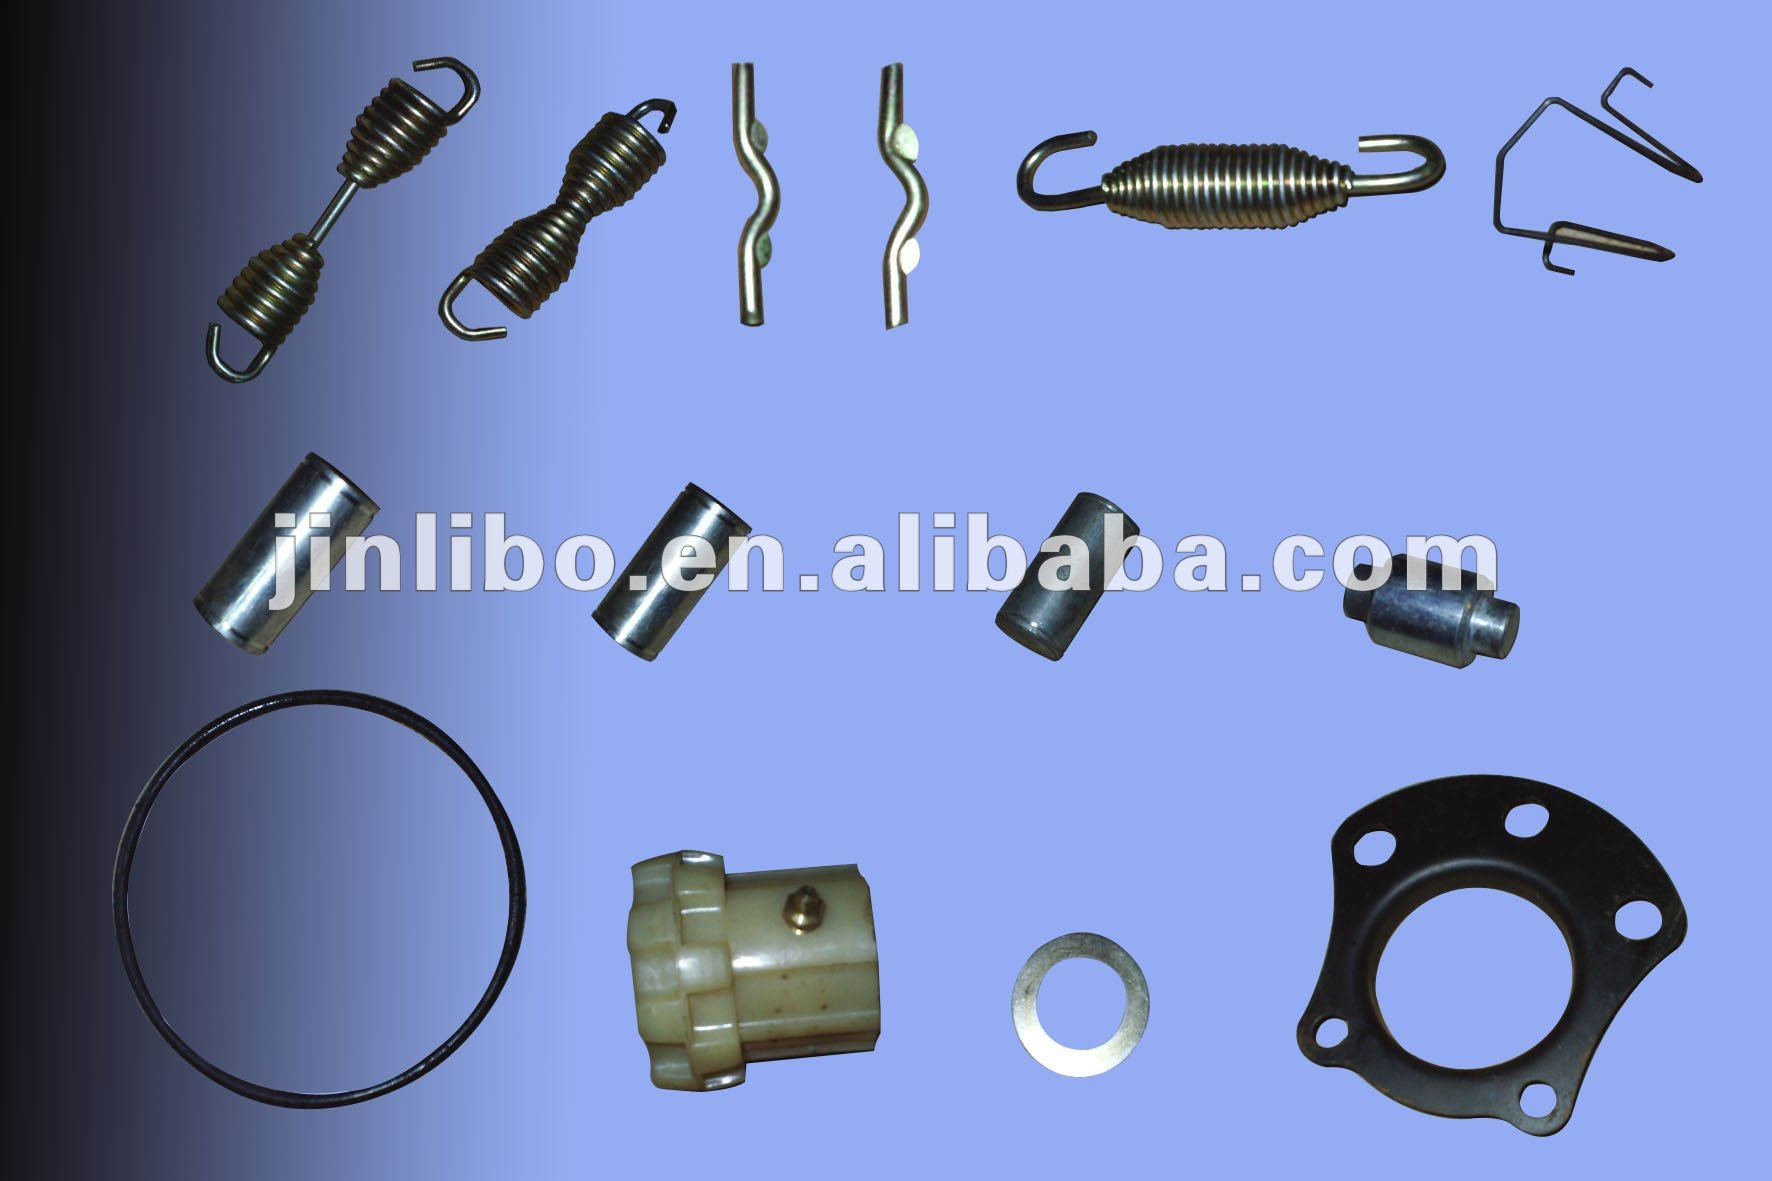 camshaft repair kit of trailer parts